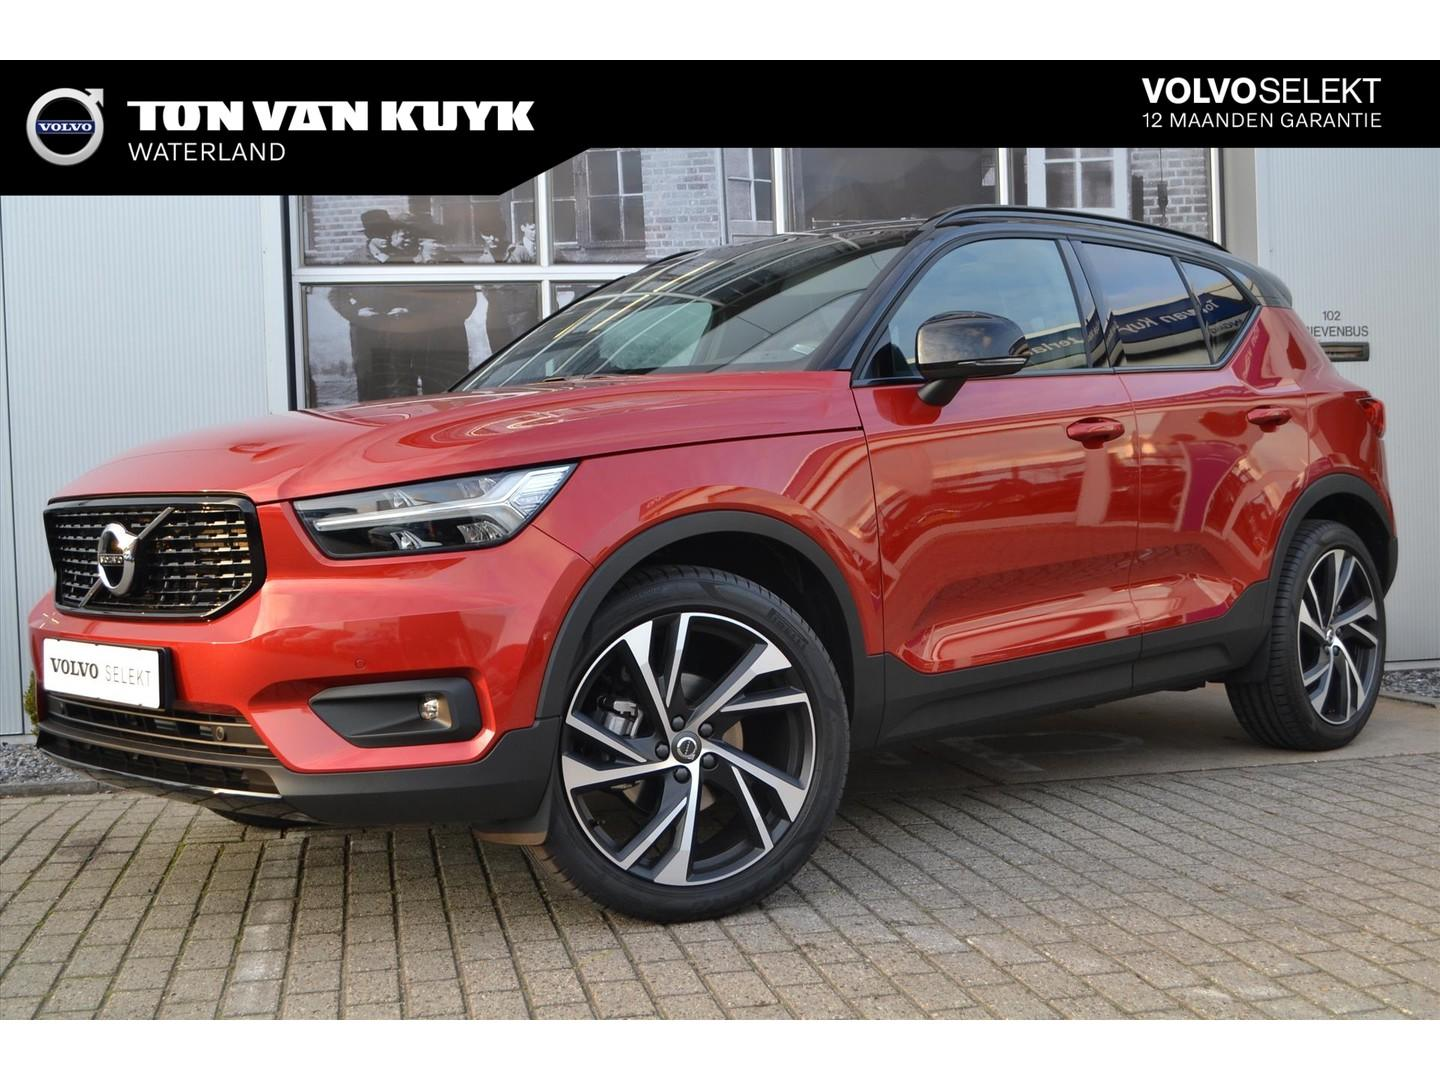 Volvo Xc40 T3 1.5 156pk r-design / intro edition / harman kardon / 20 inch r-design velgen